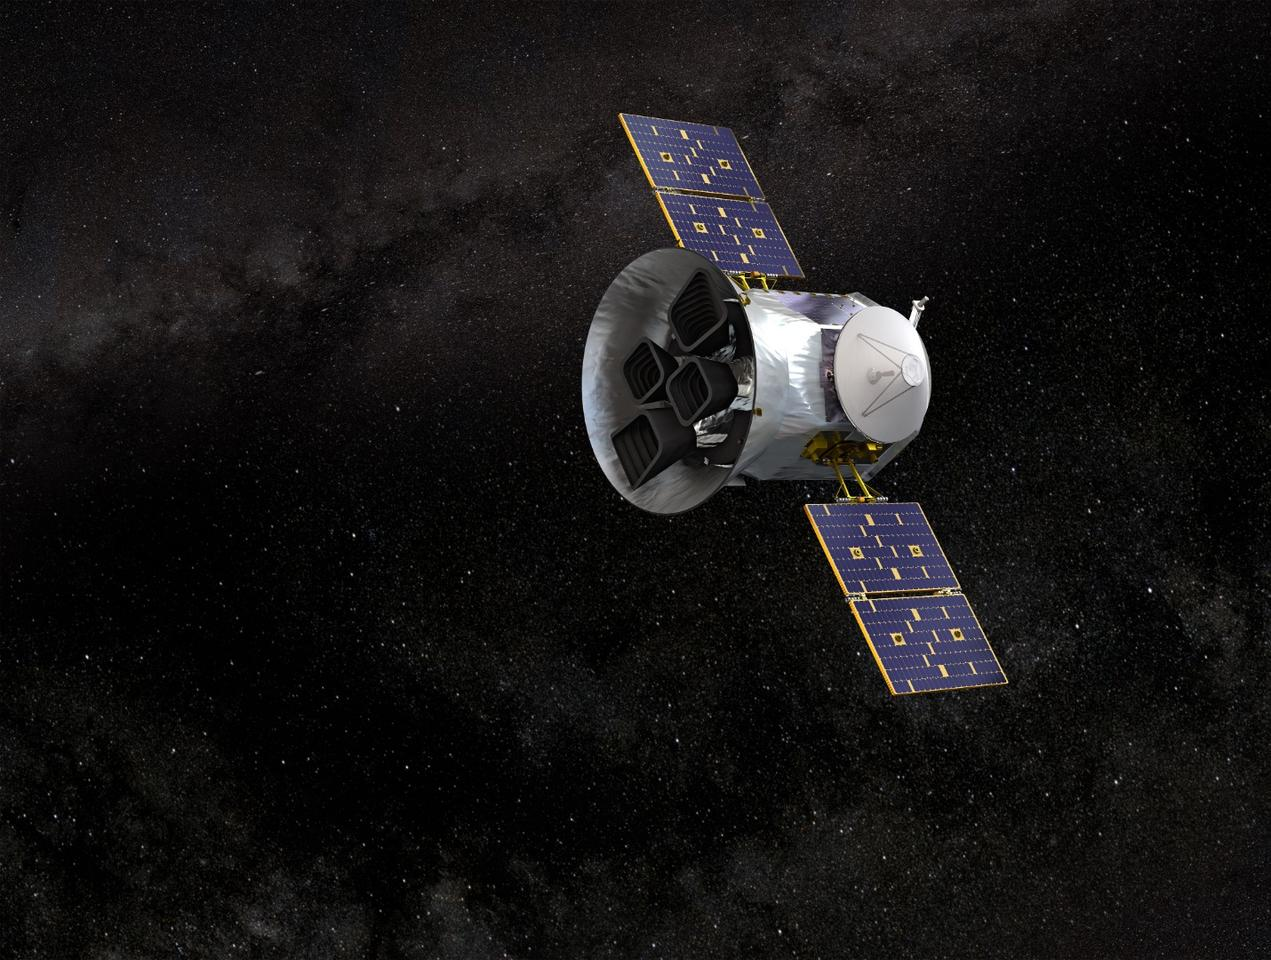 Artist concept of the TESS spacecraft which recently observed a supernova and the elemental content of its spectra